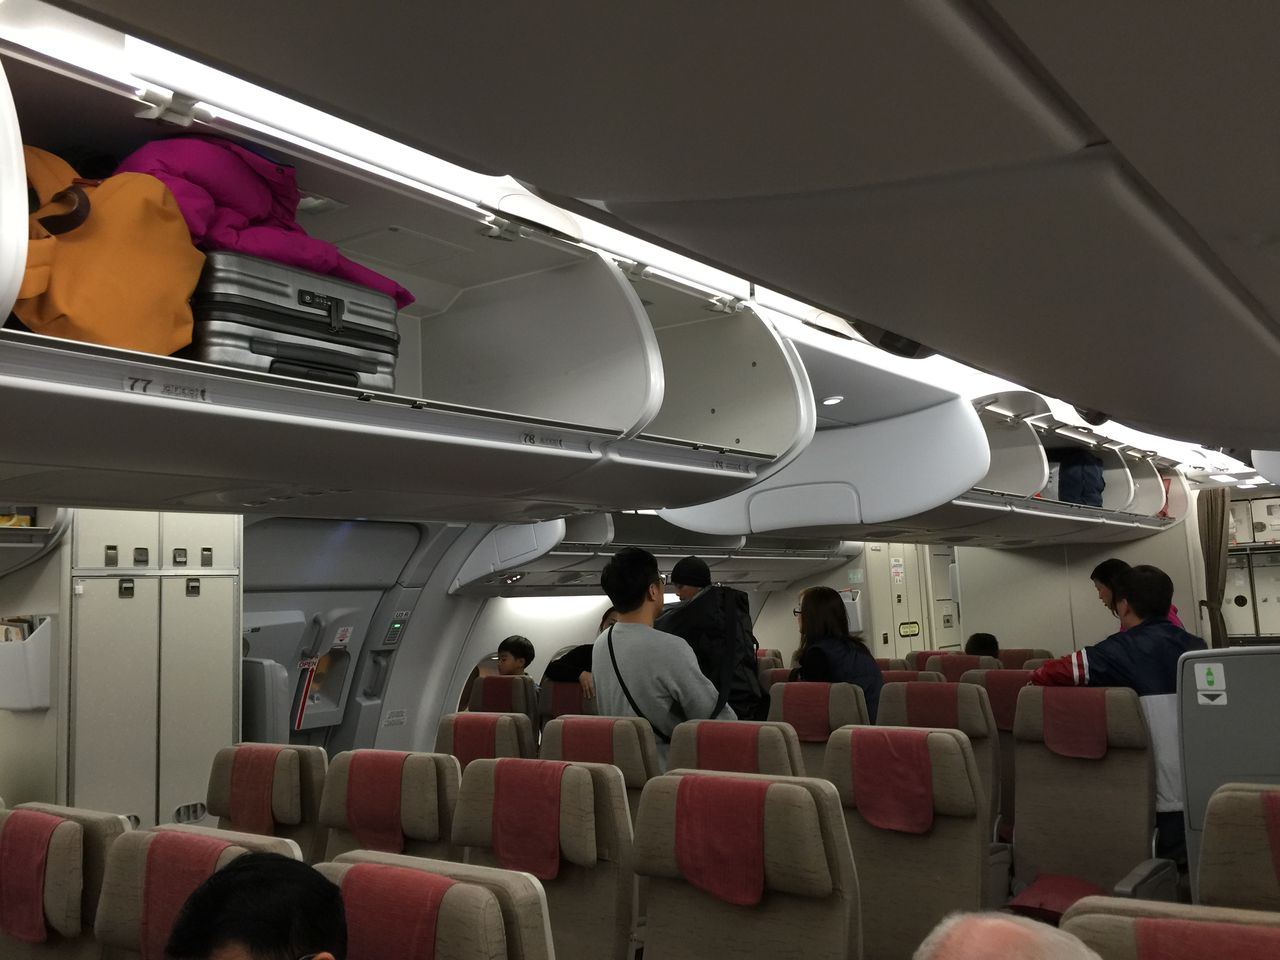 Review of Asiana Airlines flight from Seoul to Hong Kong in Economy